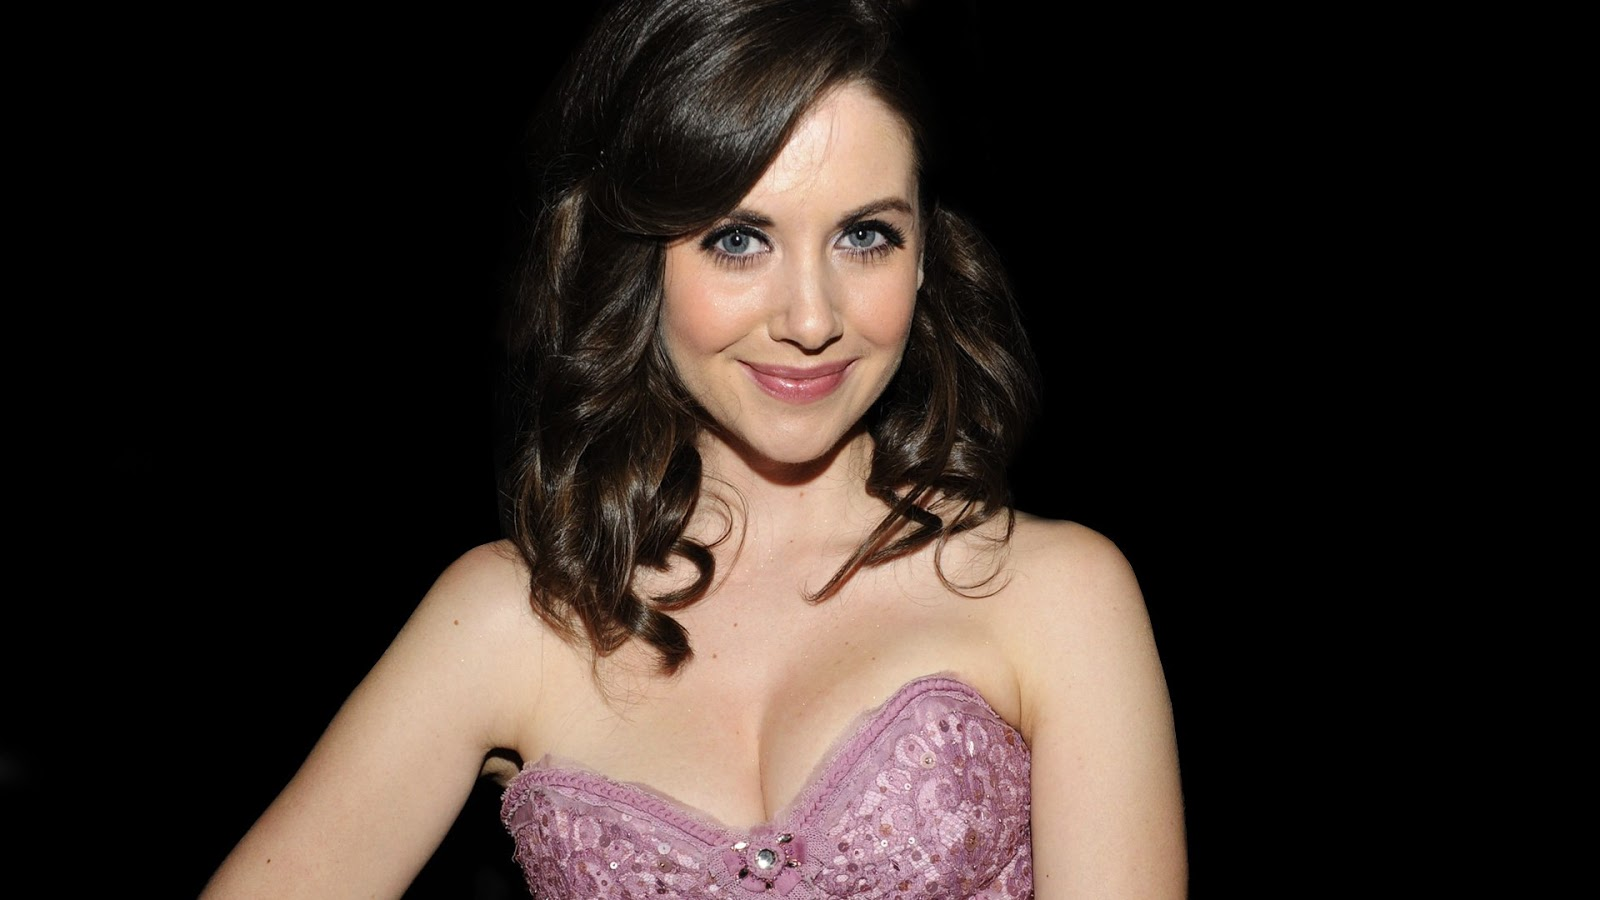 HD Wallpapers : Alison Brie HD Wallpapers